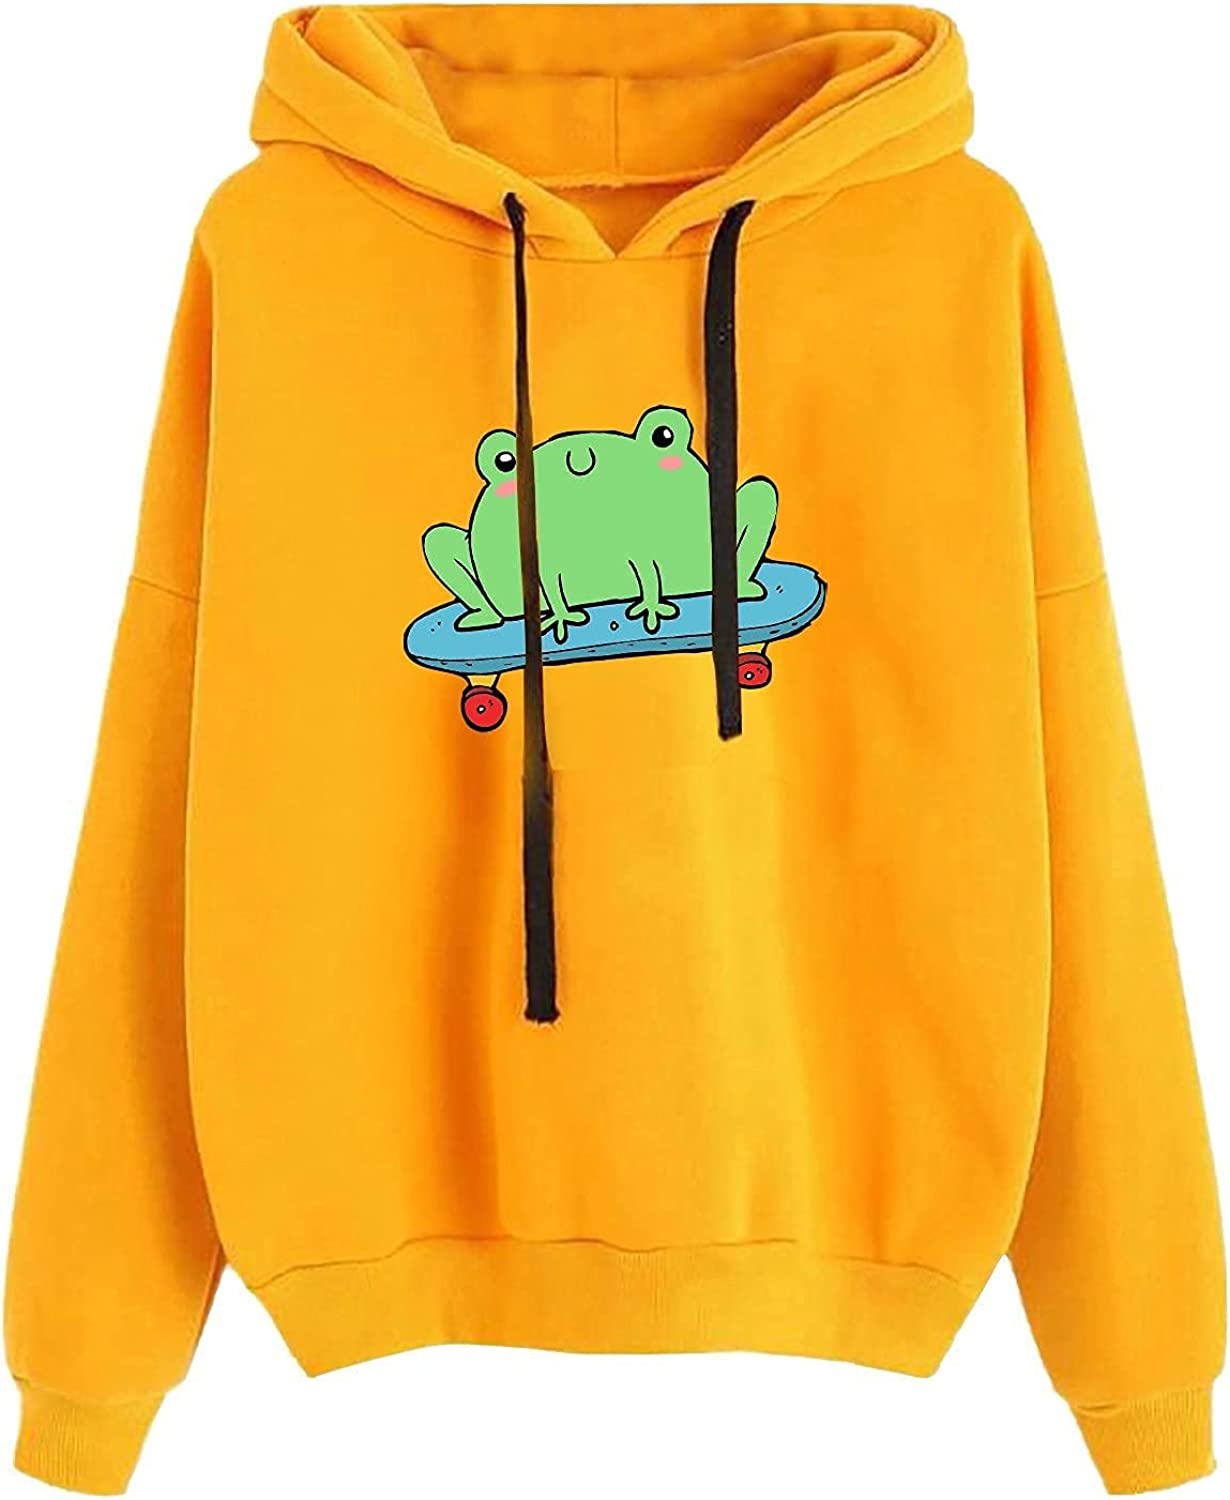 Women's Heart Print Long Sleeve Pullover Hoodies Fall Lightweight Hooded Sweatshirt Casual Tops with Pockets